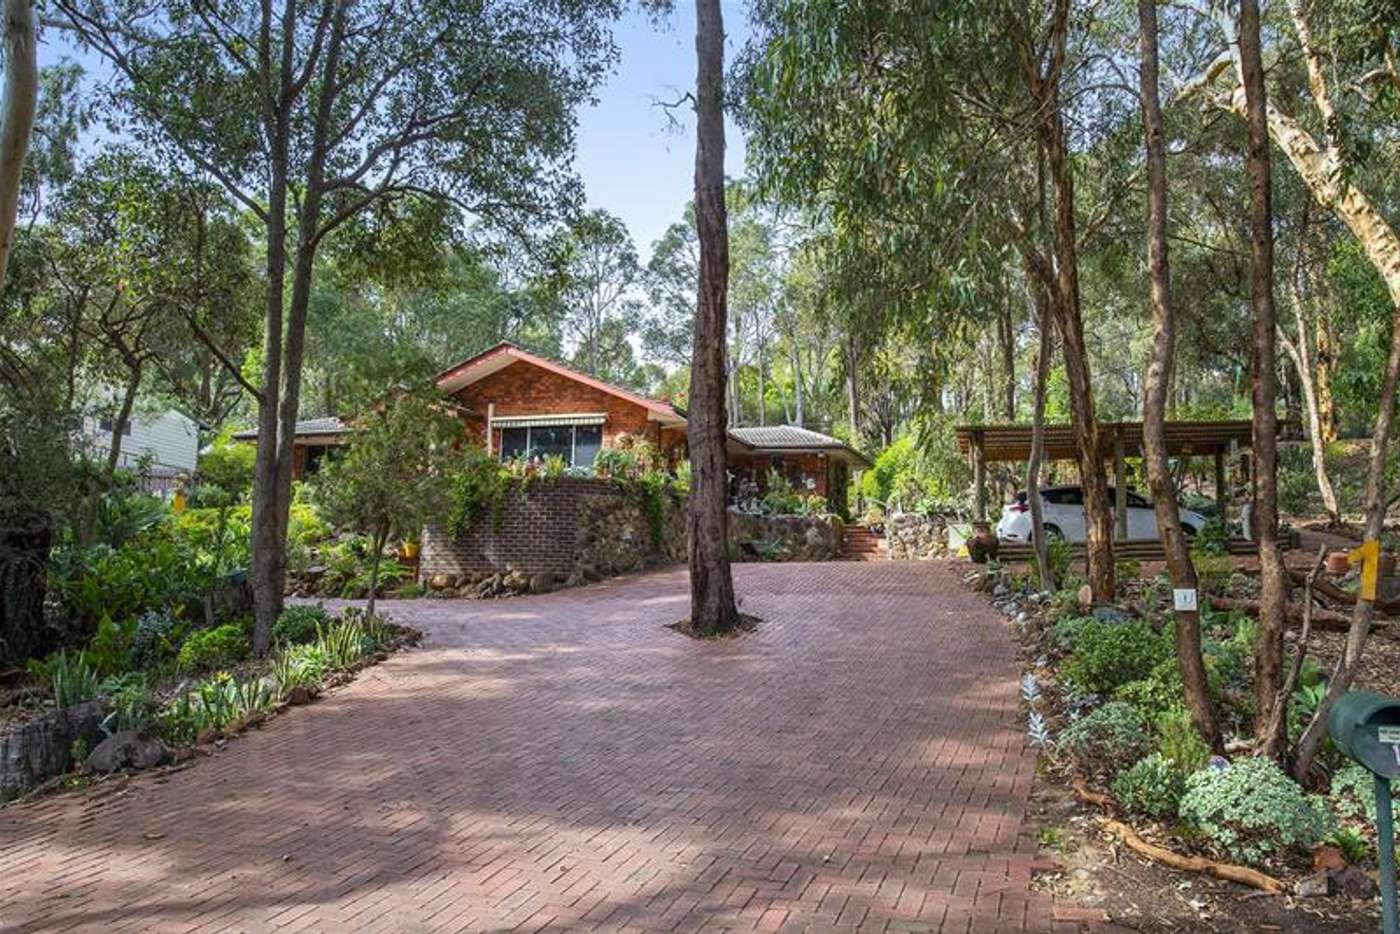 Main view of Homely house listing, 1 Pound Place, Roleystone WA 6111